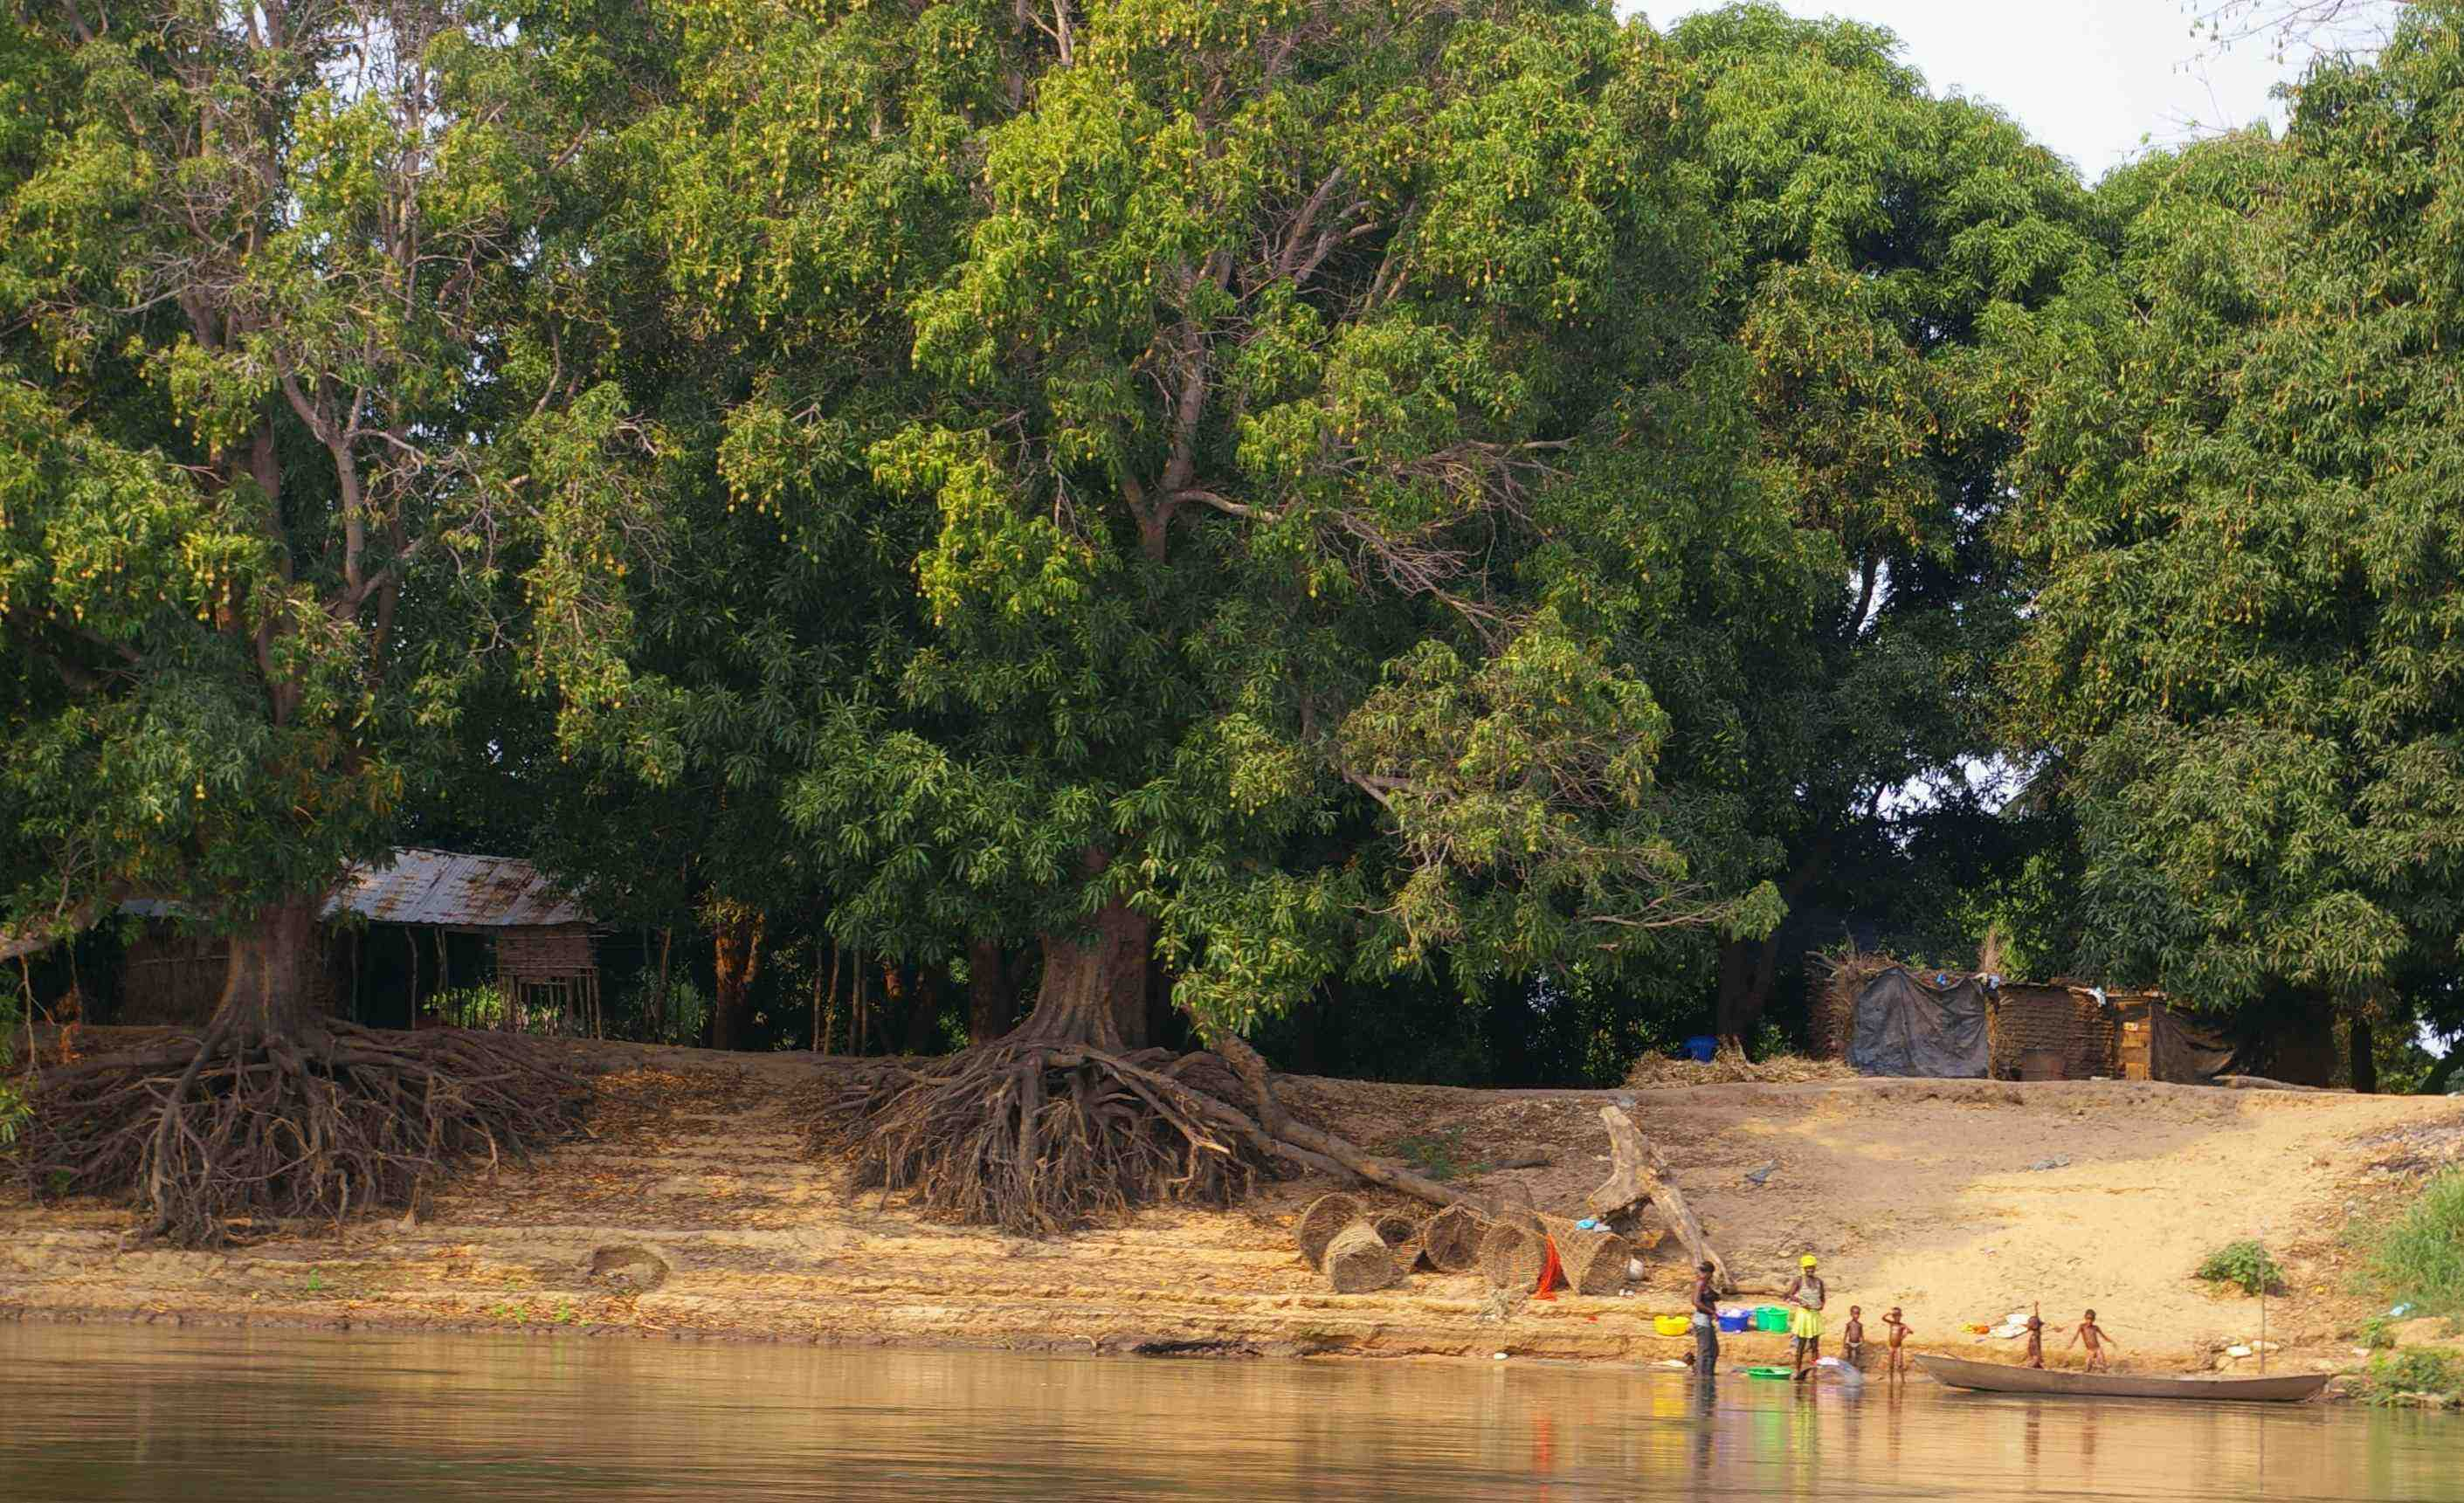 A small fishing village on the banks of the Kwanza River.